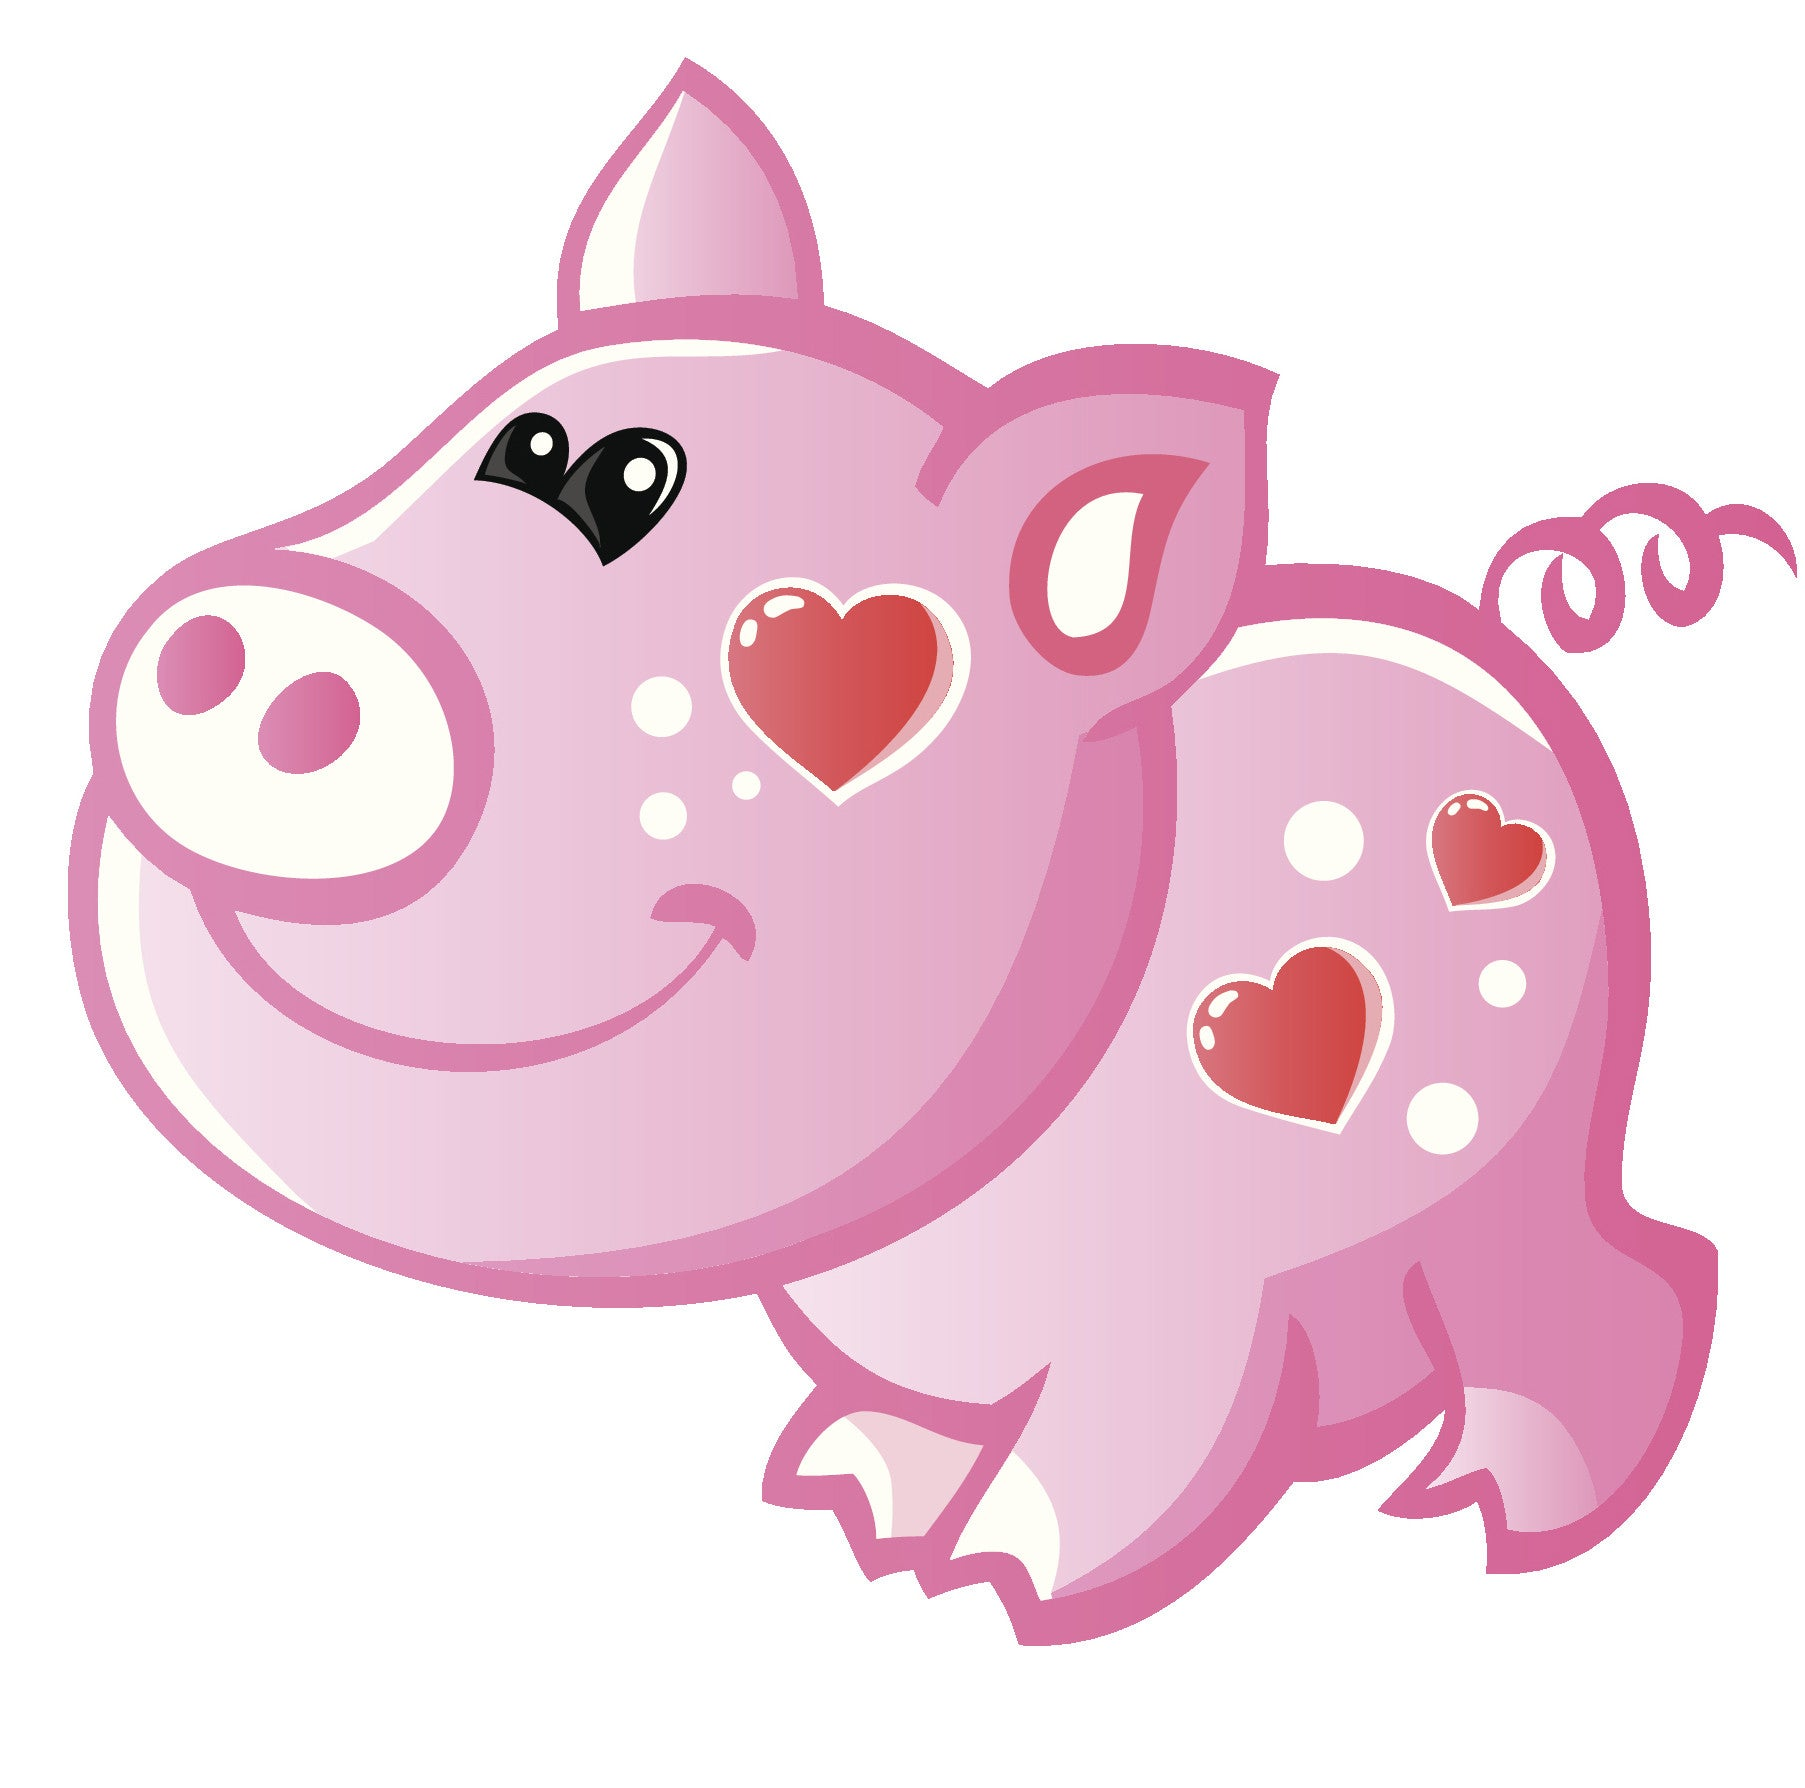 Adorable Baby Piglet Pig with Hearts Vinyl Decal Sticker